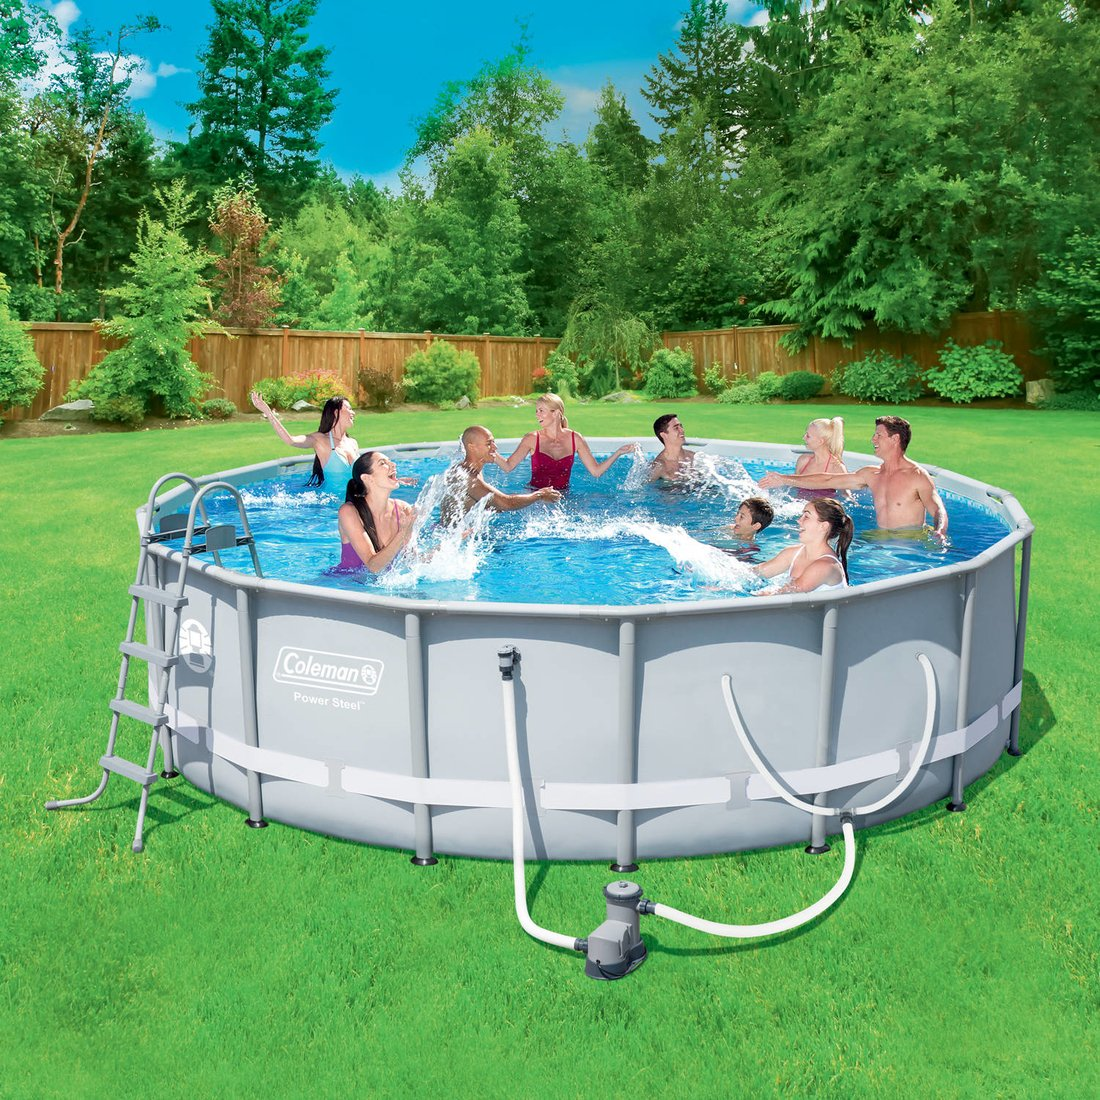 Power Steel Frame Swimming Pool 16' x 48'' Set with Filter Pump, Ladder, Cover and Maintenance Kit by ColemanPower